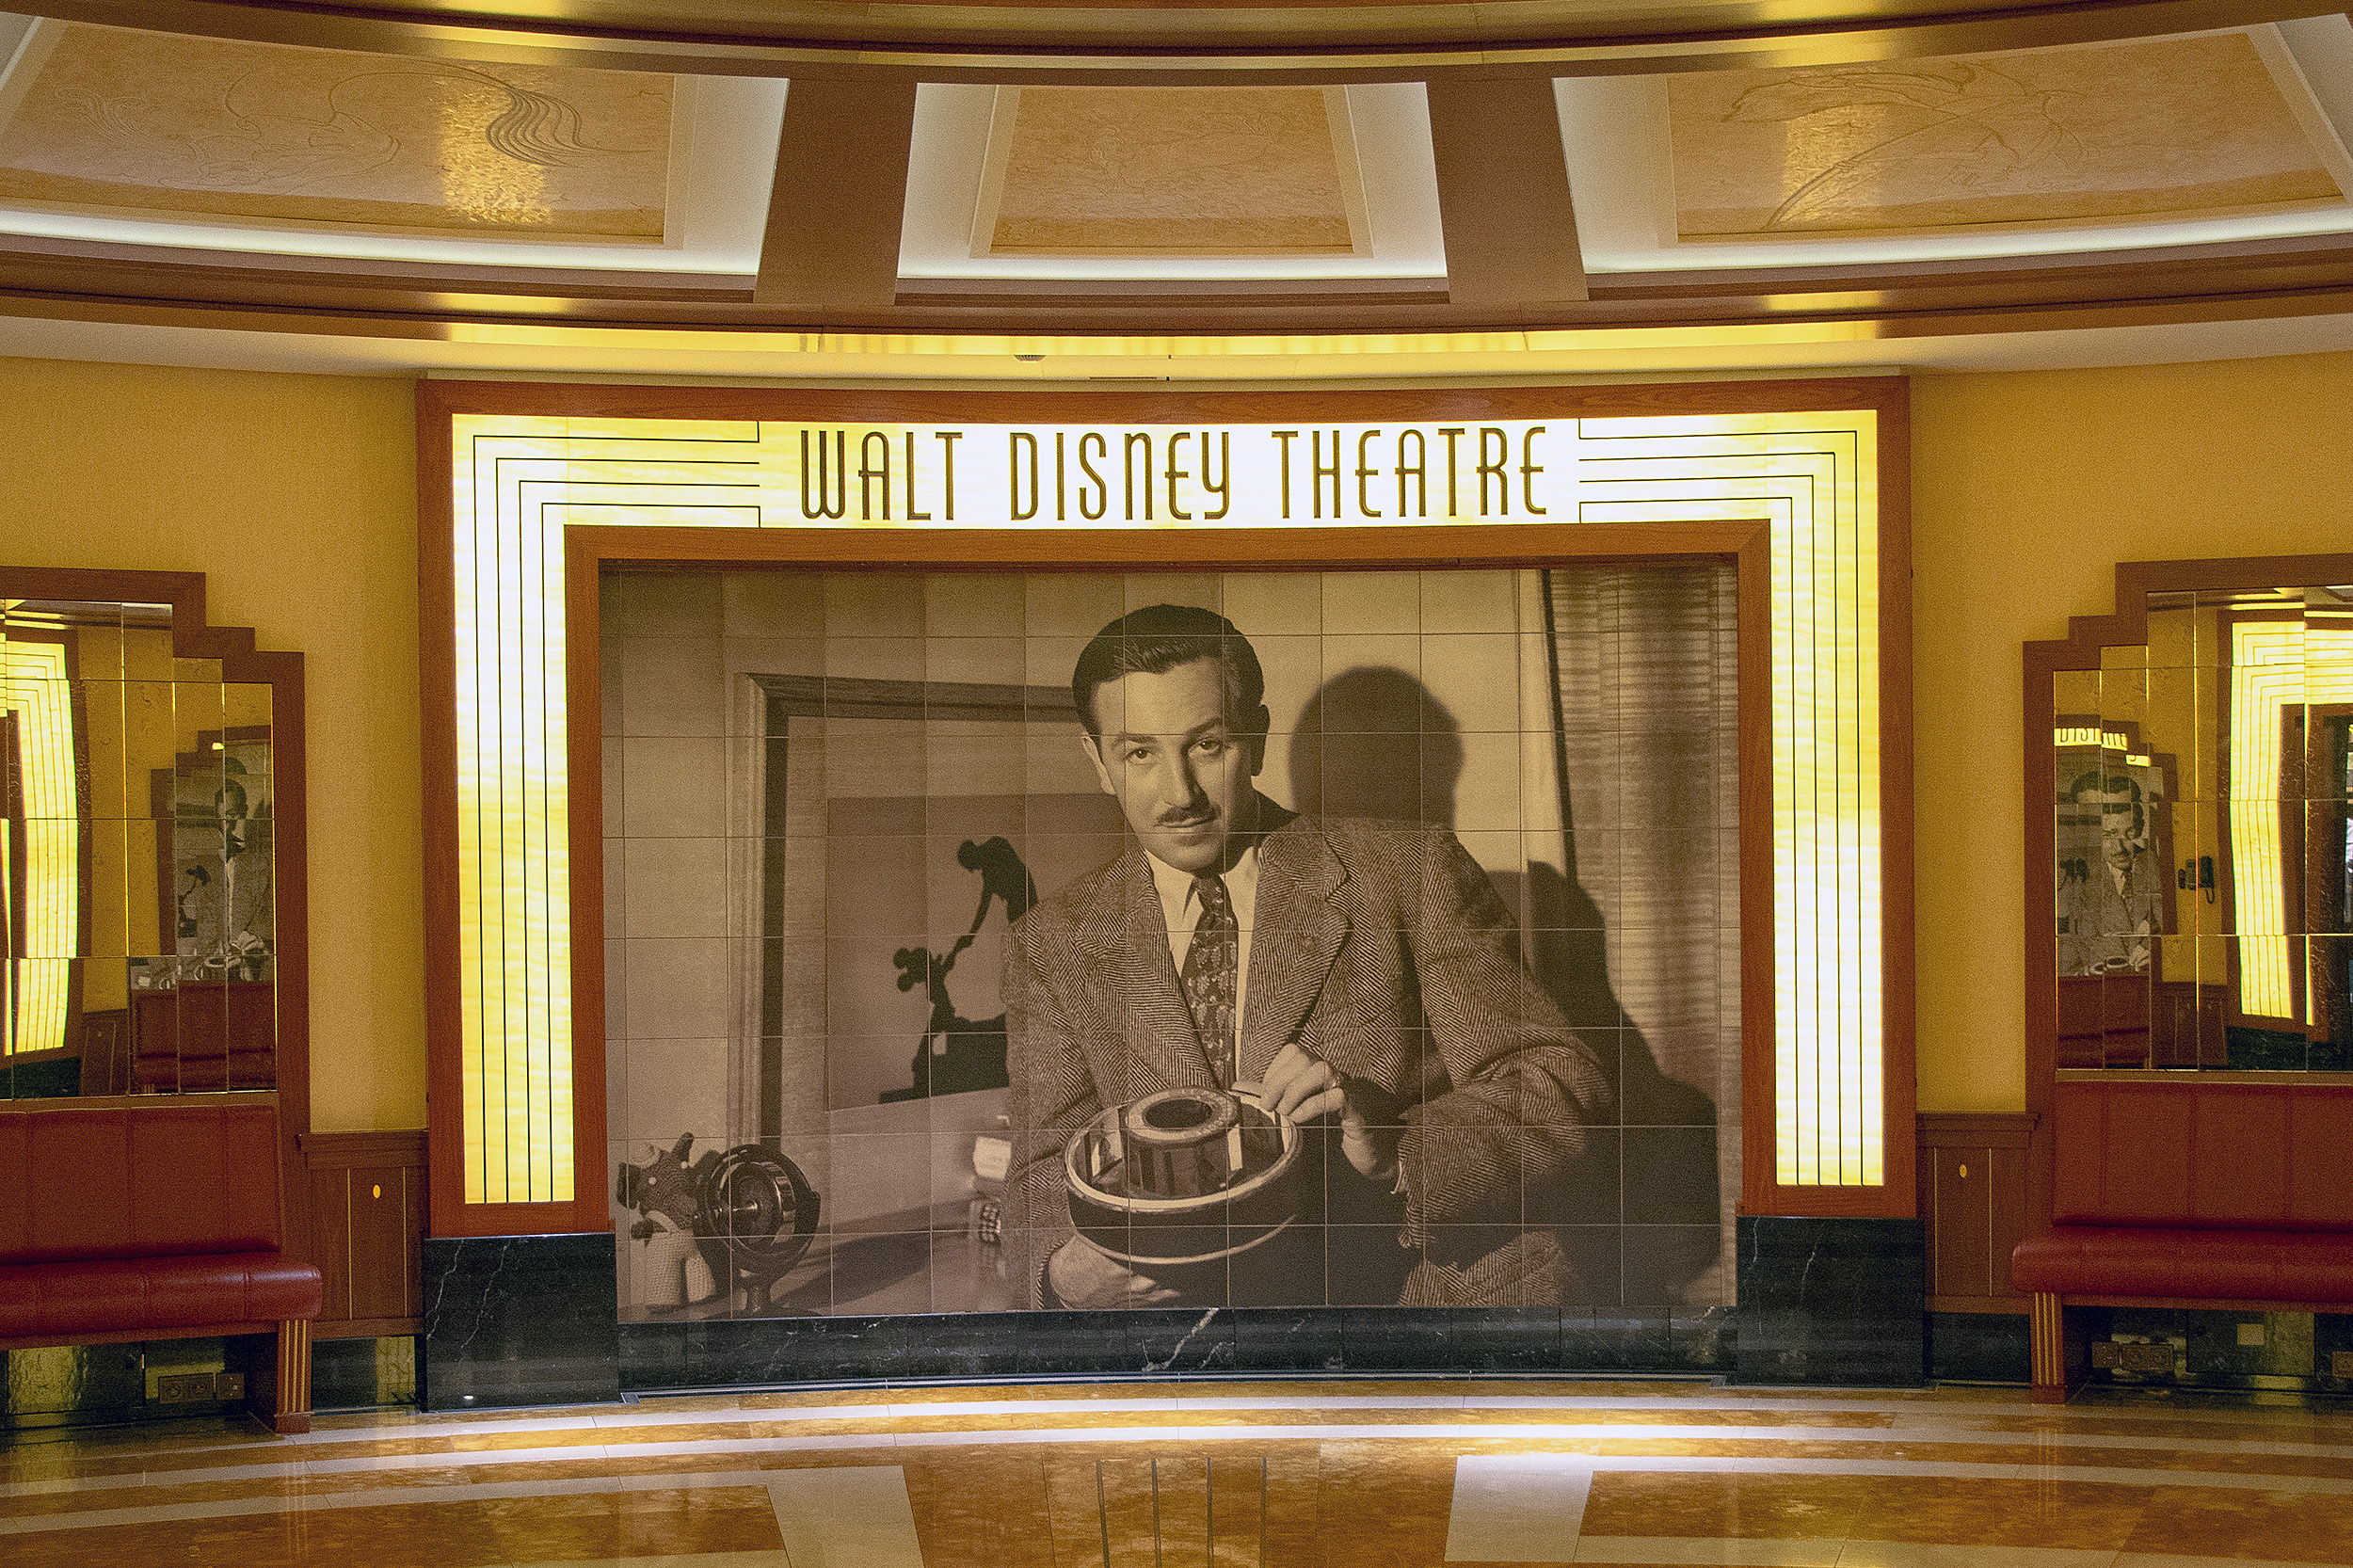 walt disney theatre disney dream disneykryssning